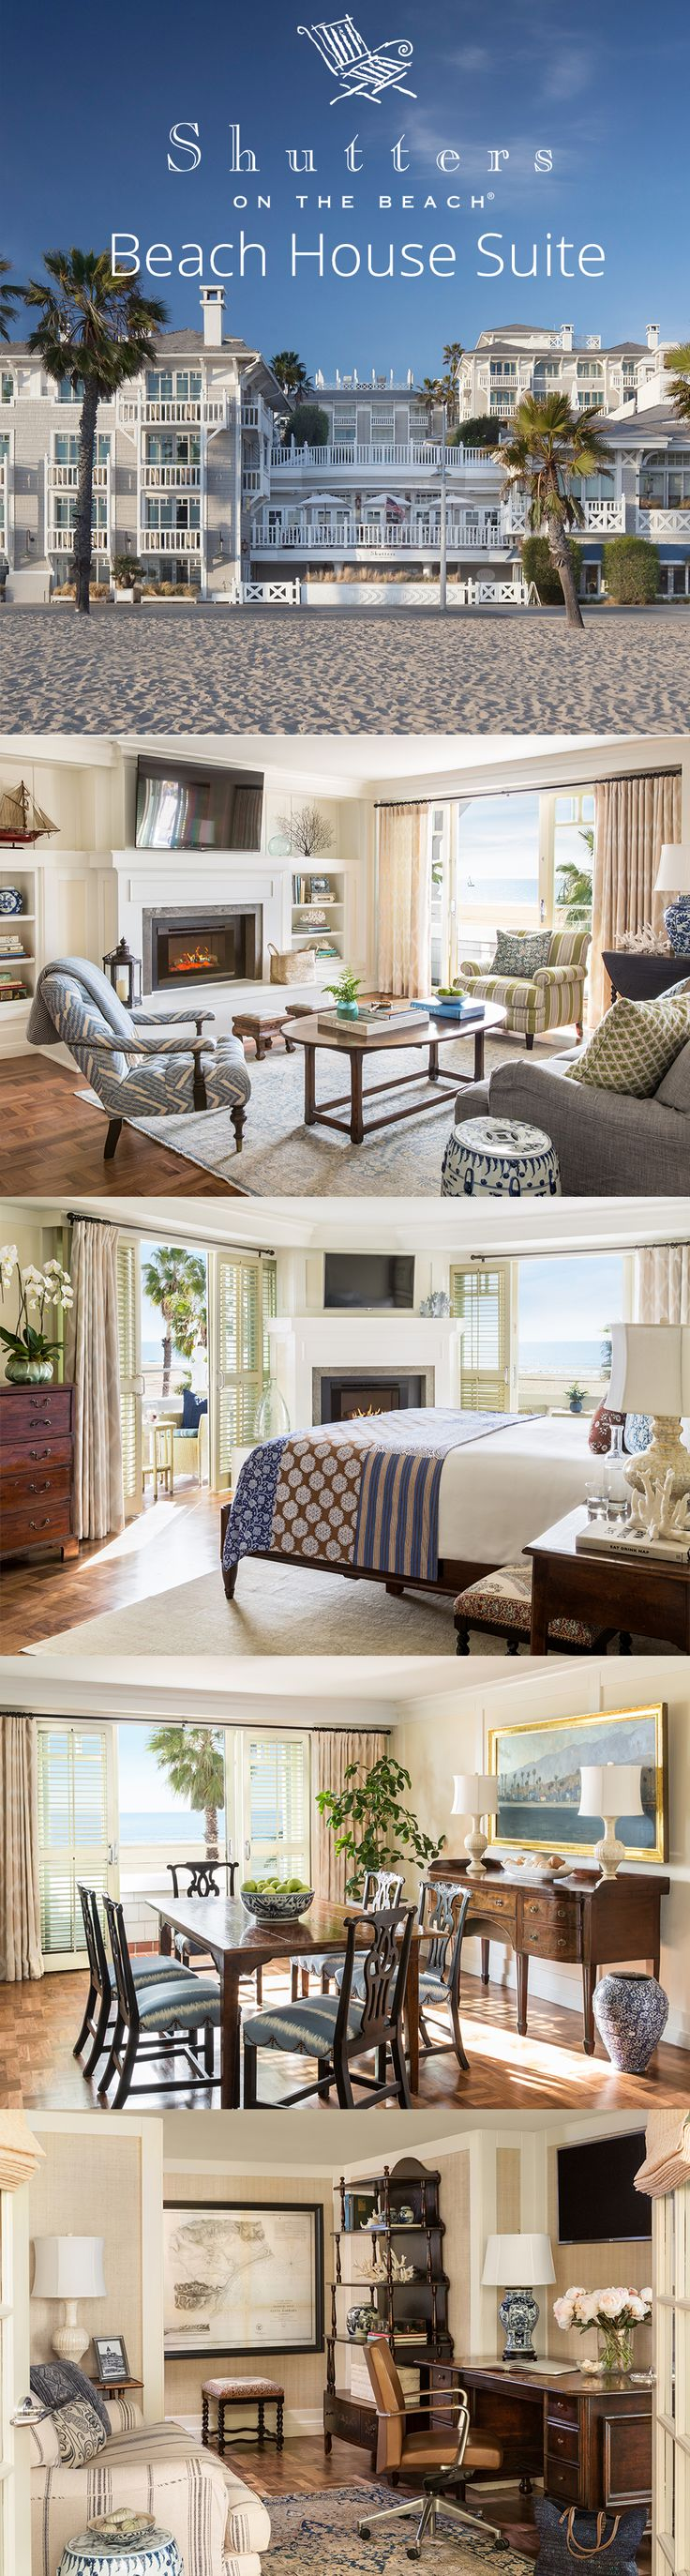 The beach house suite at luxury hotel shutters on the beach in santa monica california